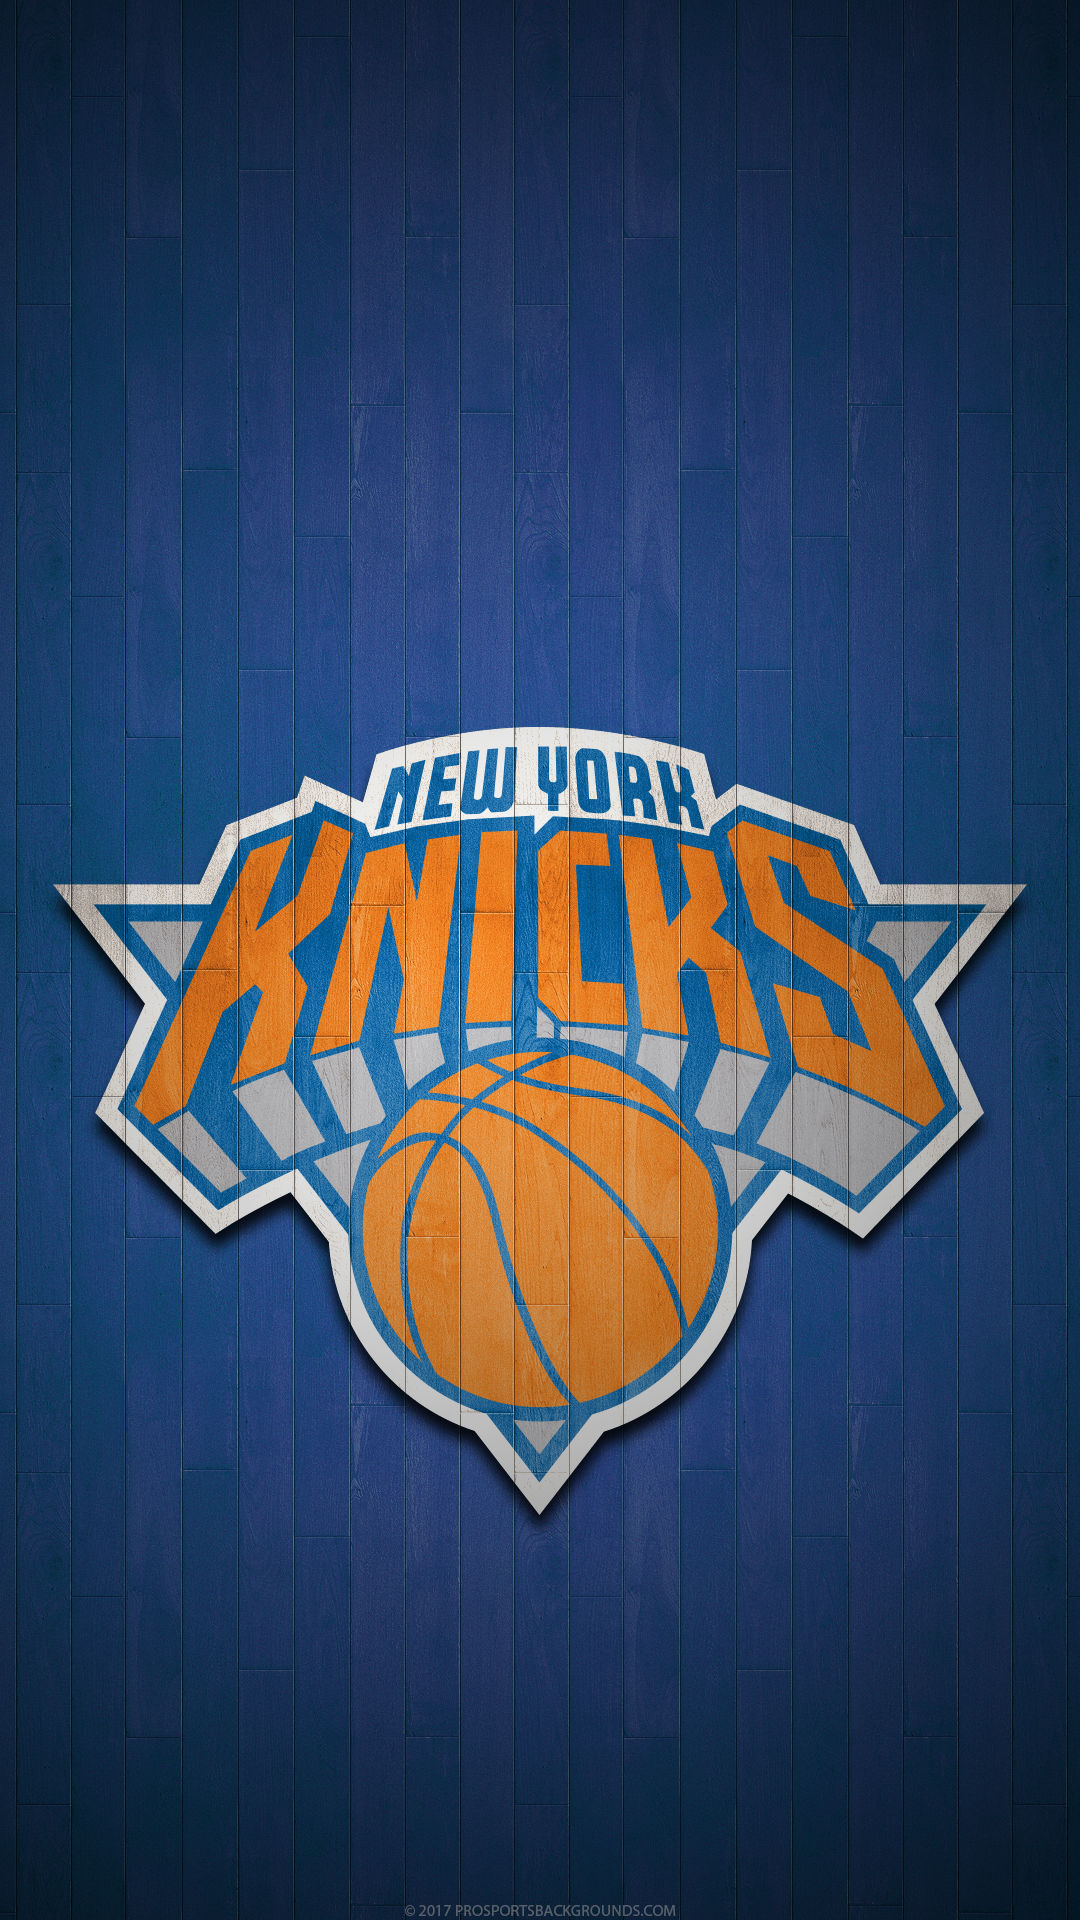 1080x1920 - New York Knicks Wallpapers 1